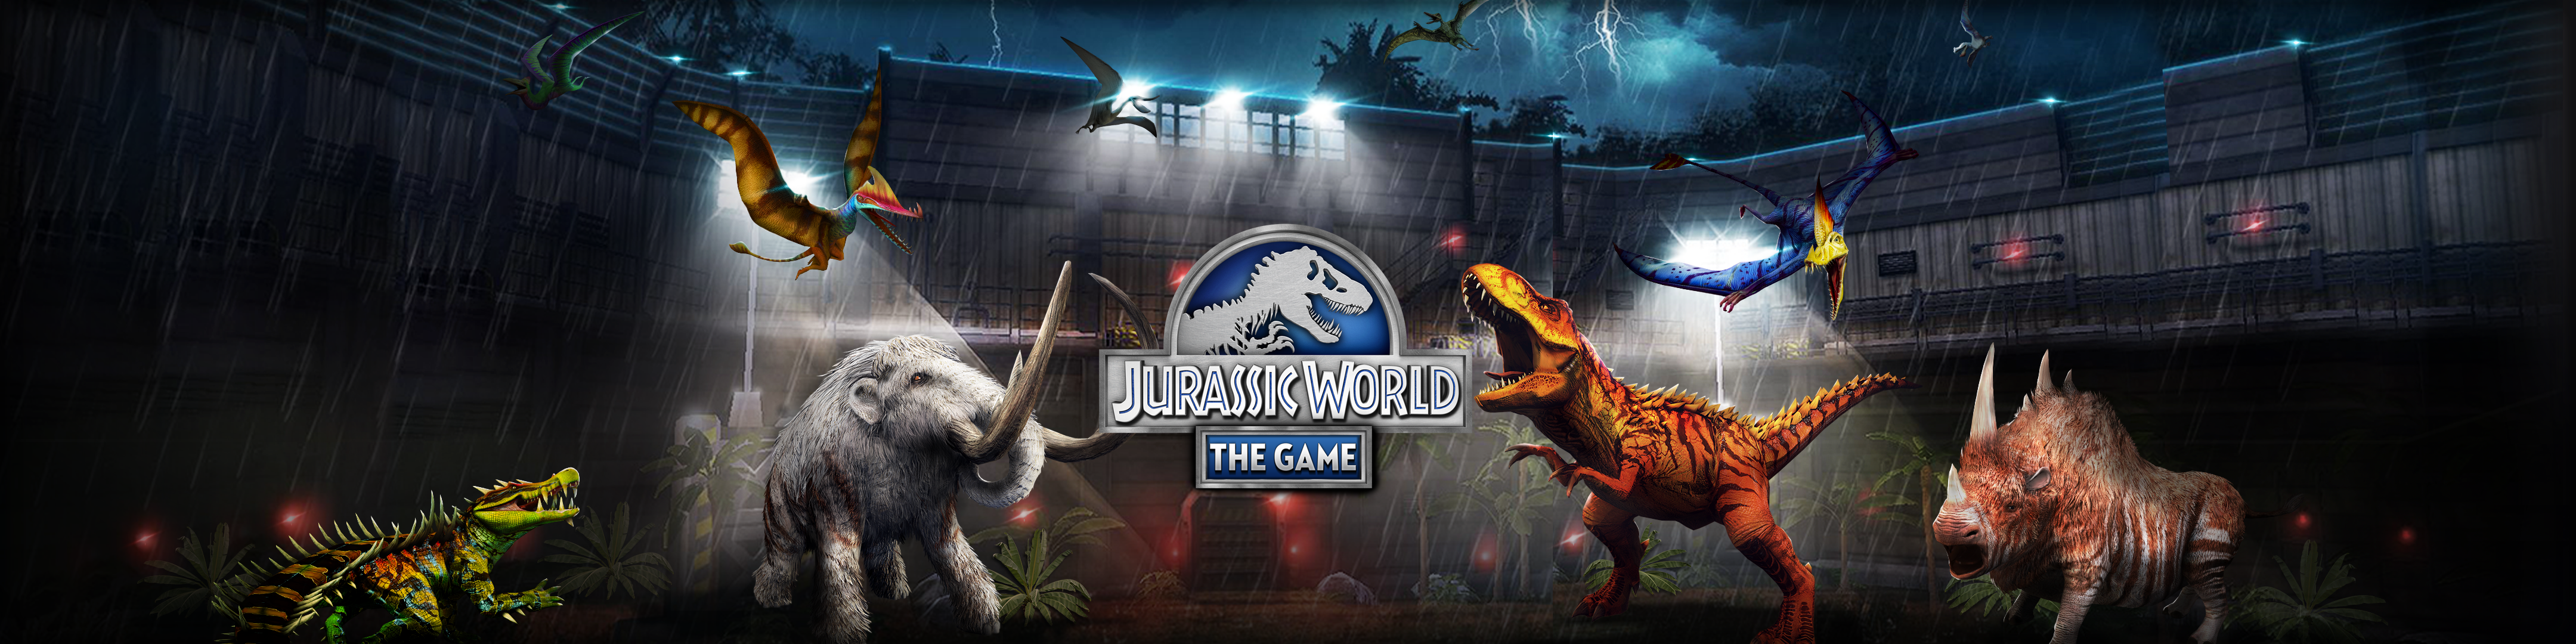 jurassic world the game vip free trial